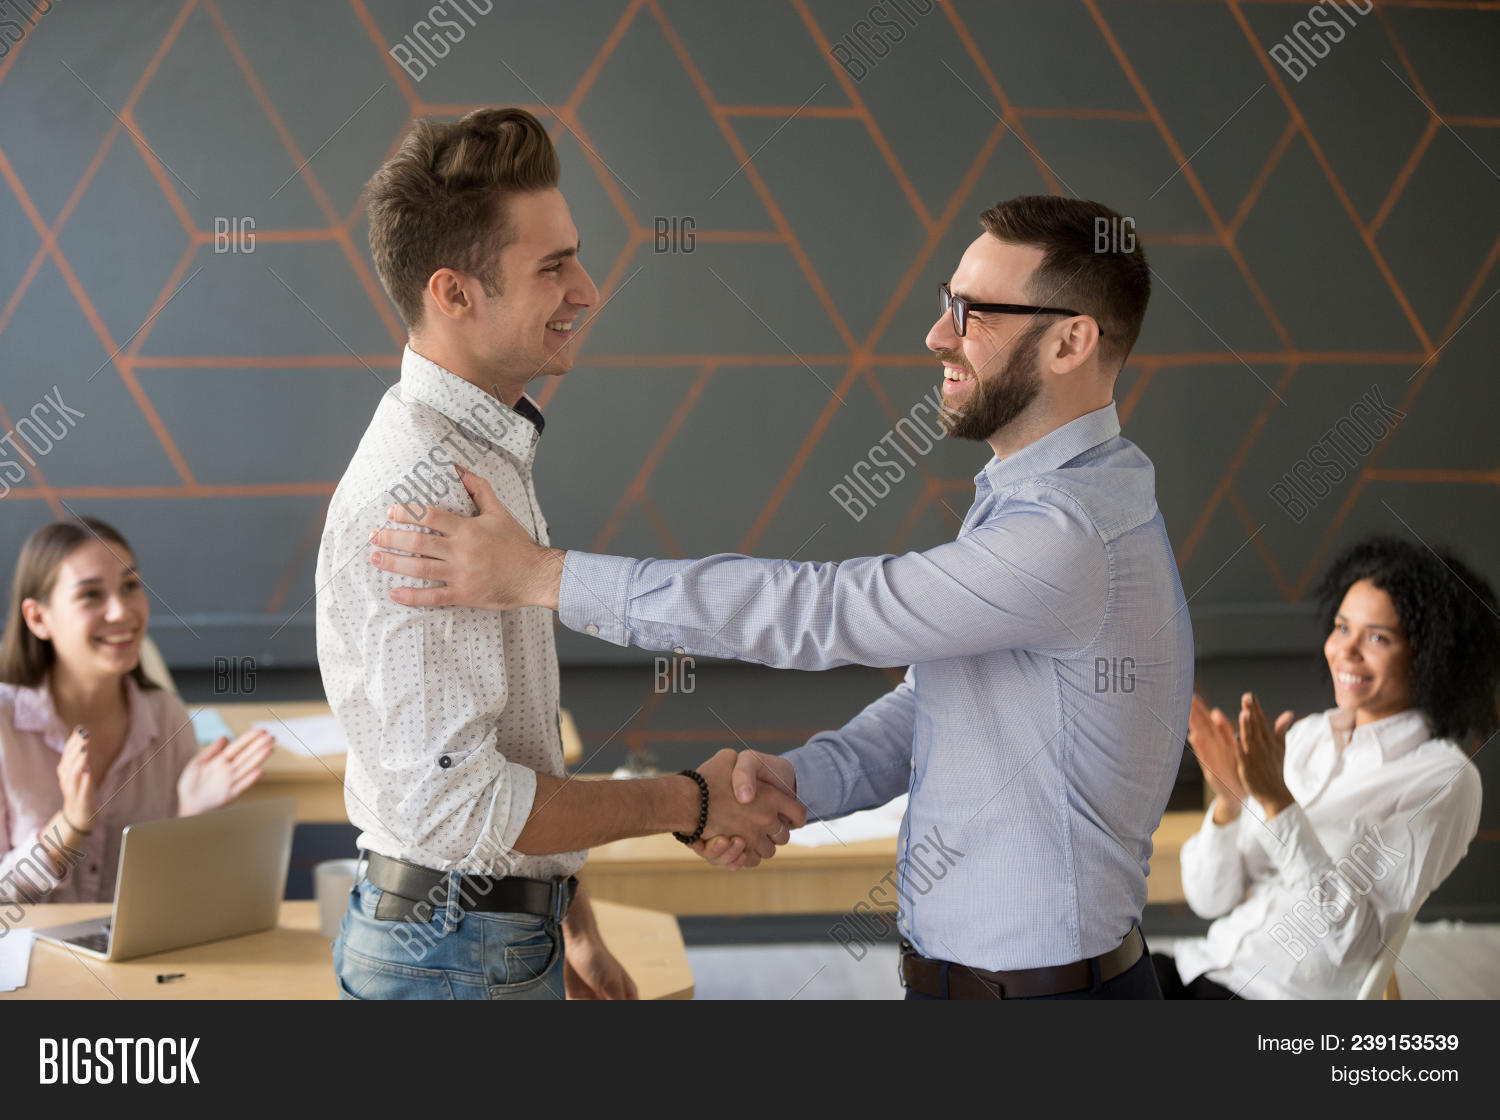 Team Leader Handshaking Employee Congratulating With Professional Achievement Or Career Promotion, T